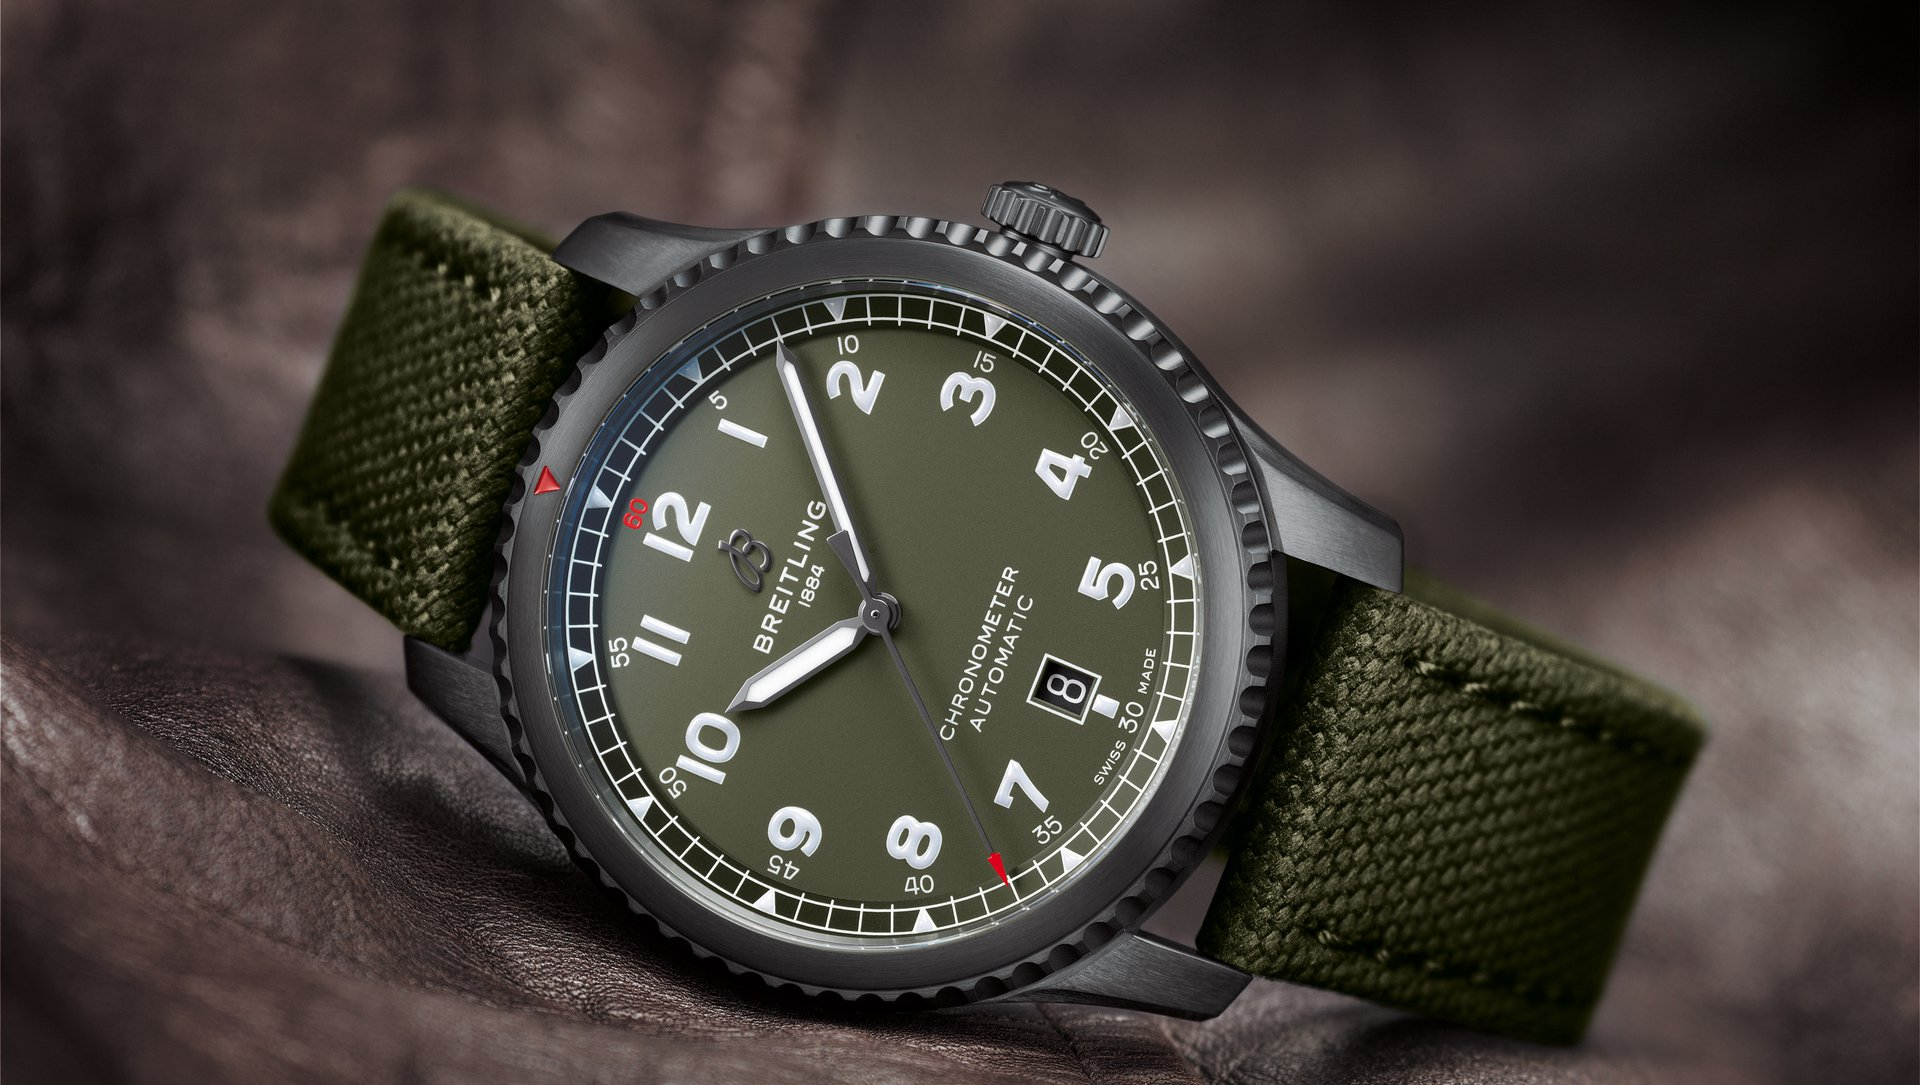 Une montre pour mes 30 ans 10_aviator-8-automatic-41-curtiss-warhawk_20834_15-02-19